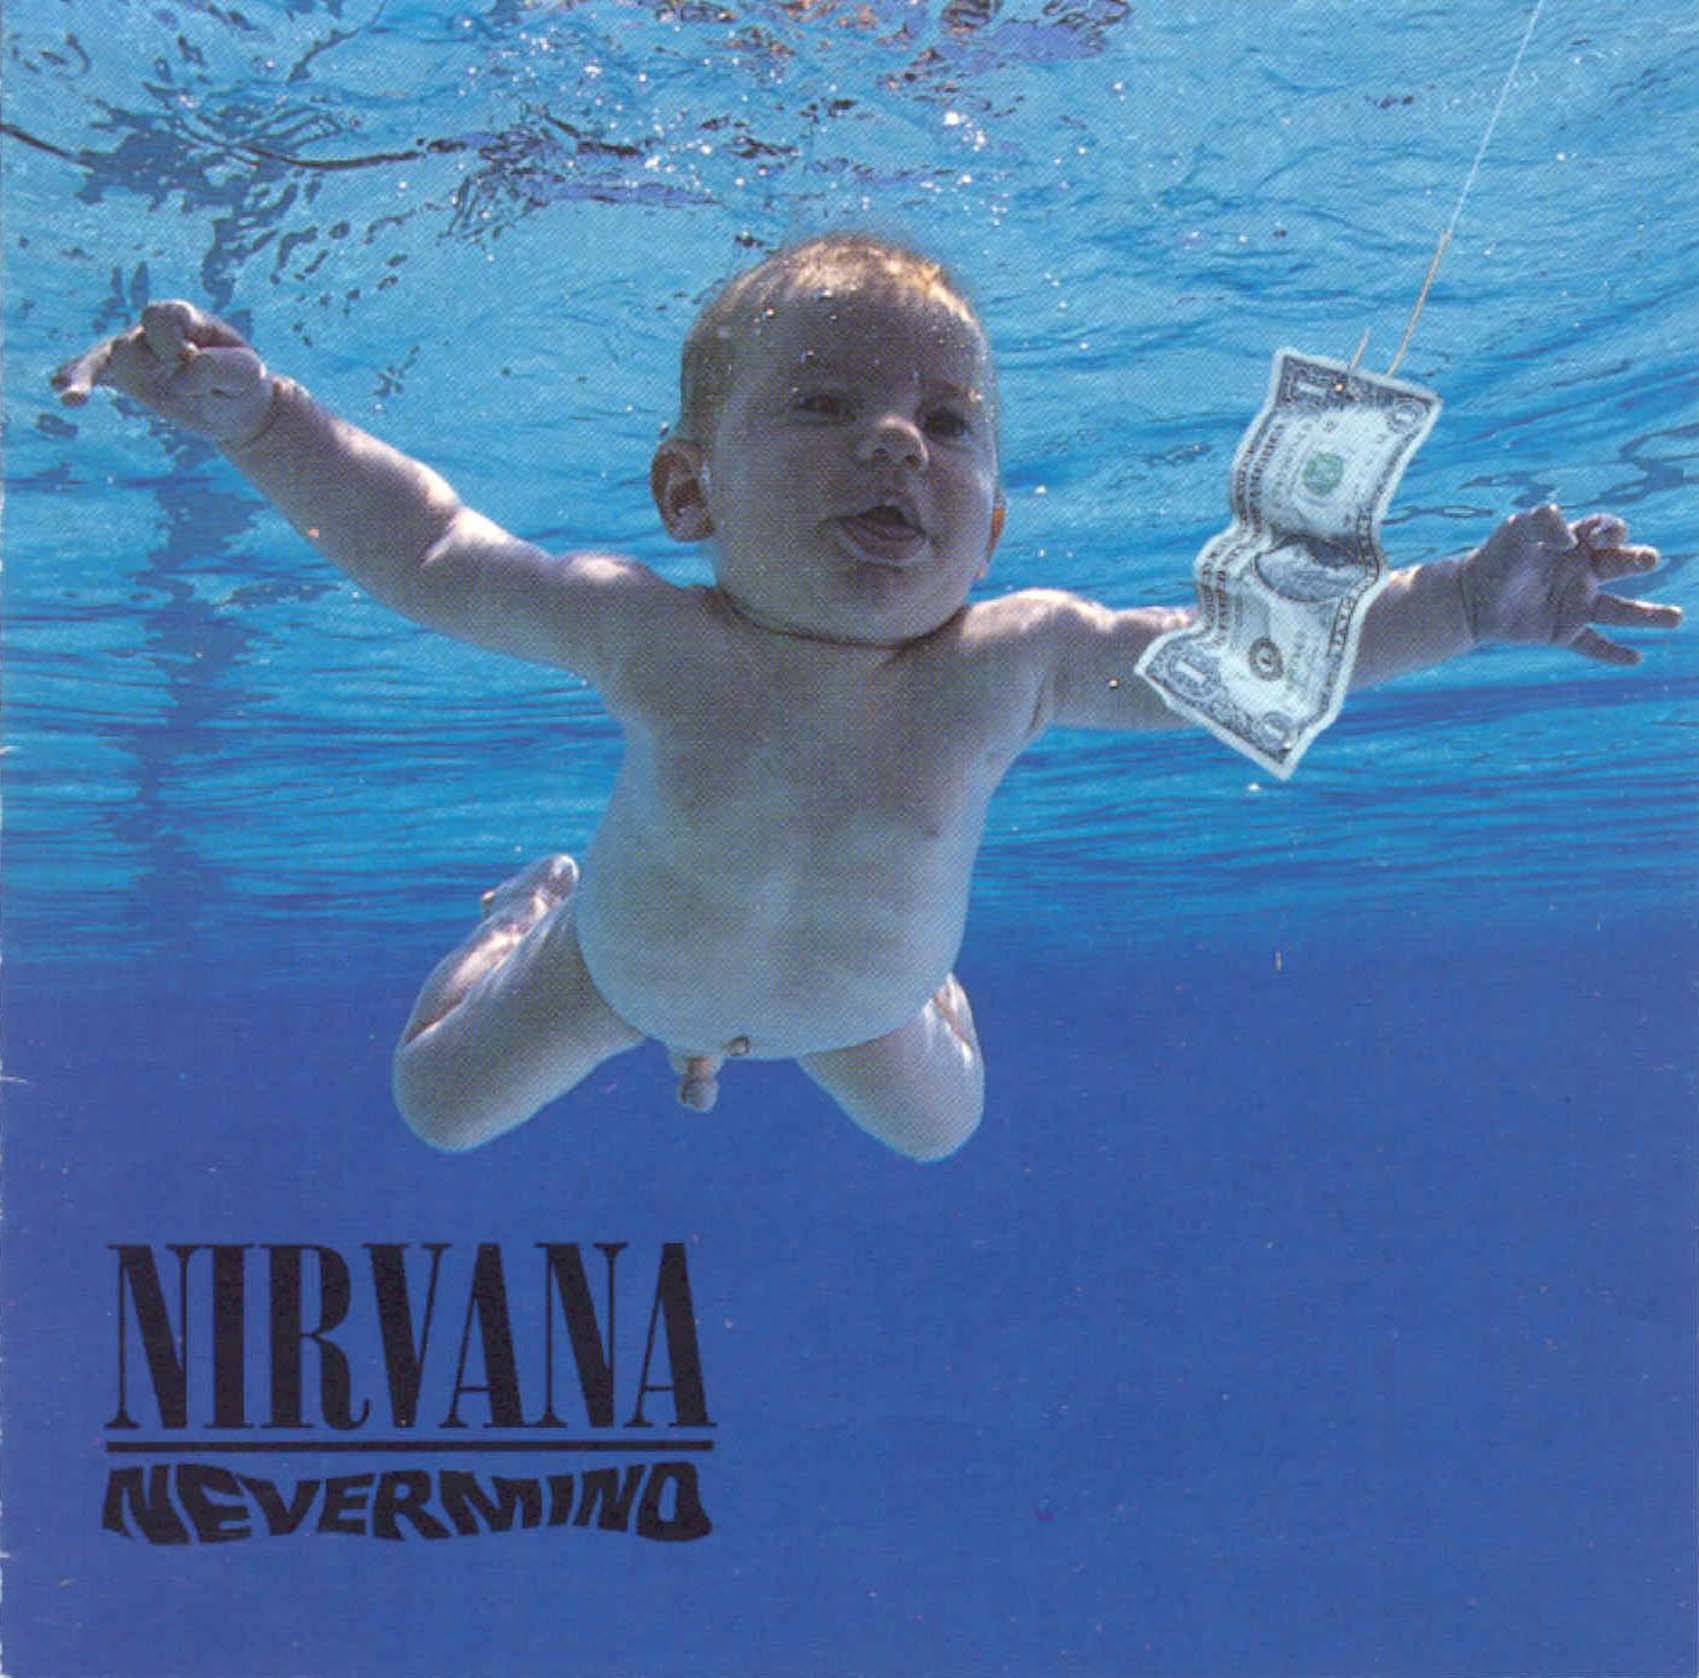 Spencer Elden - the baby featured on Nirvana's 'Nevermind' album cover